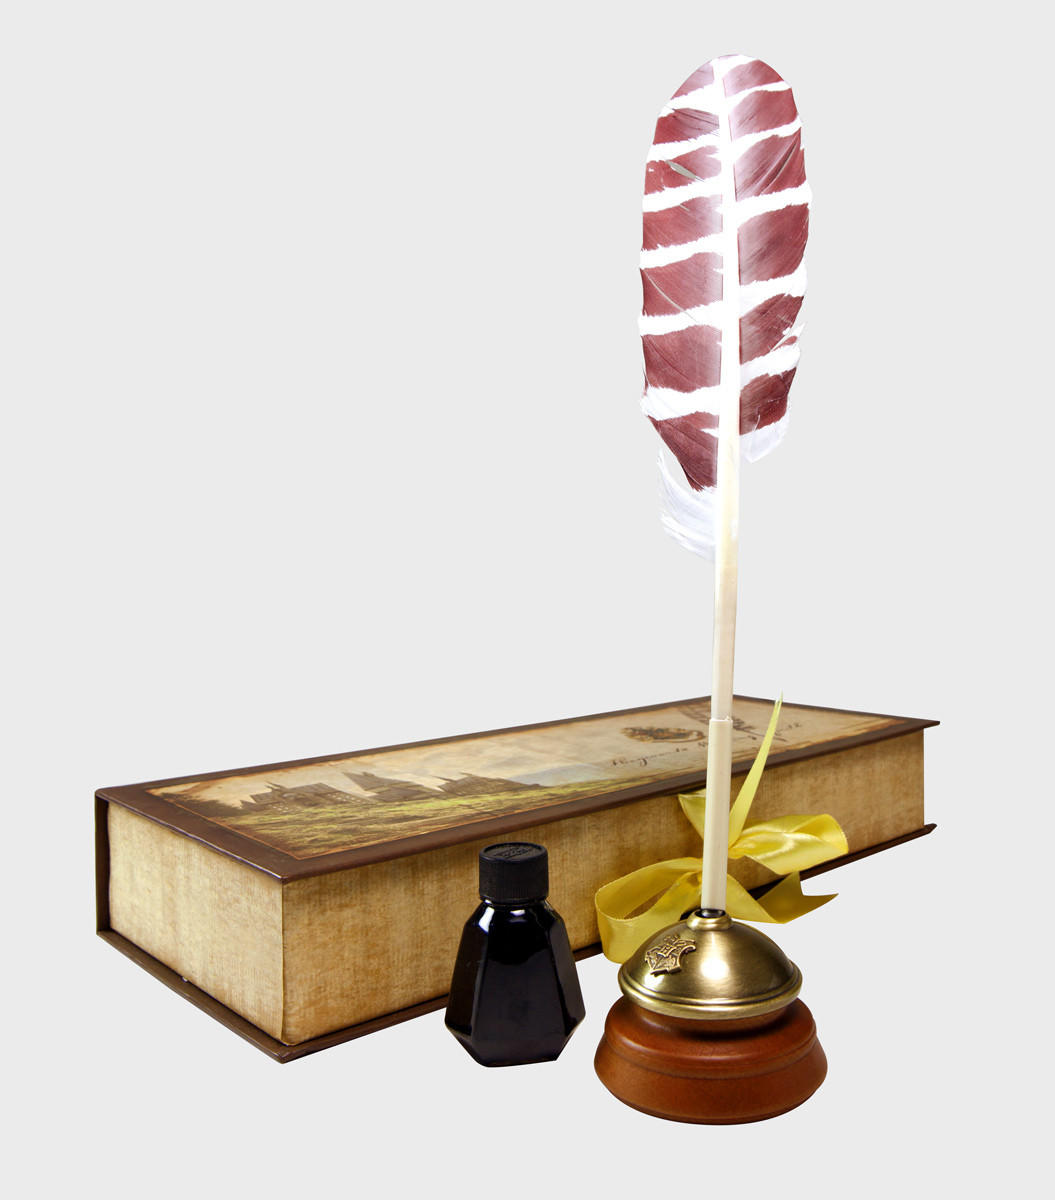 Harry Potter Bathroom Accessories Hogwarts Writing Quill With Ink Pot From Harry Potter